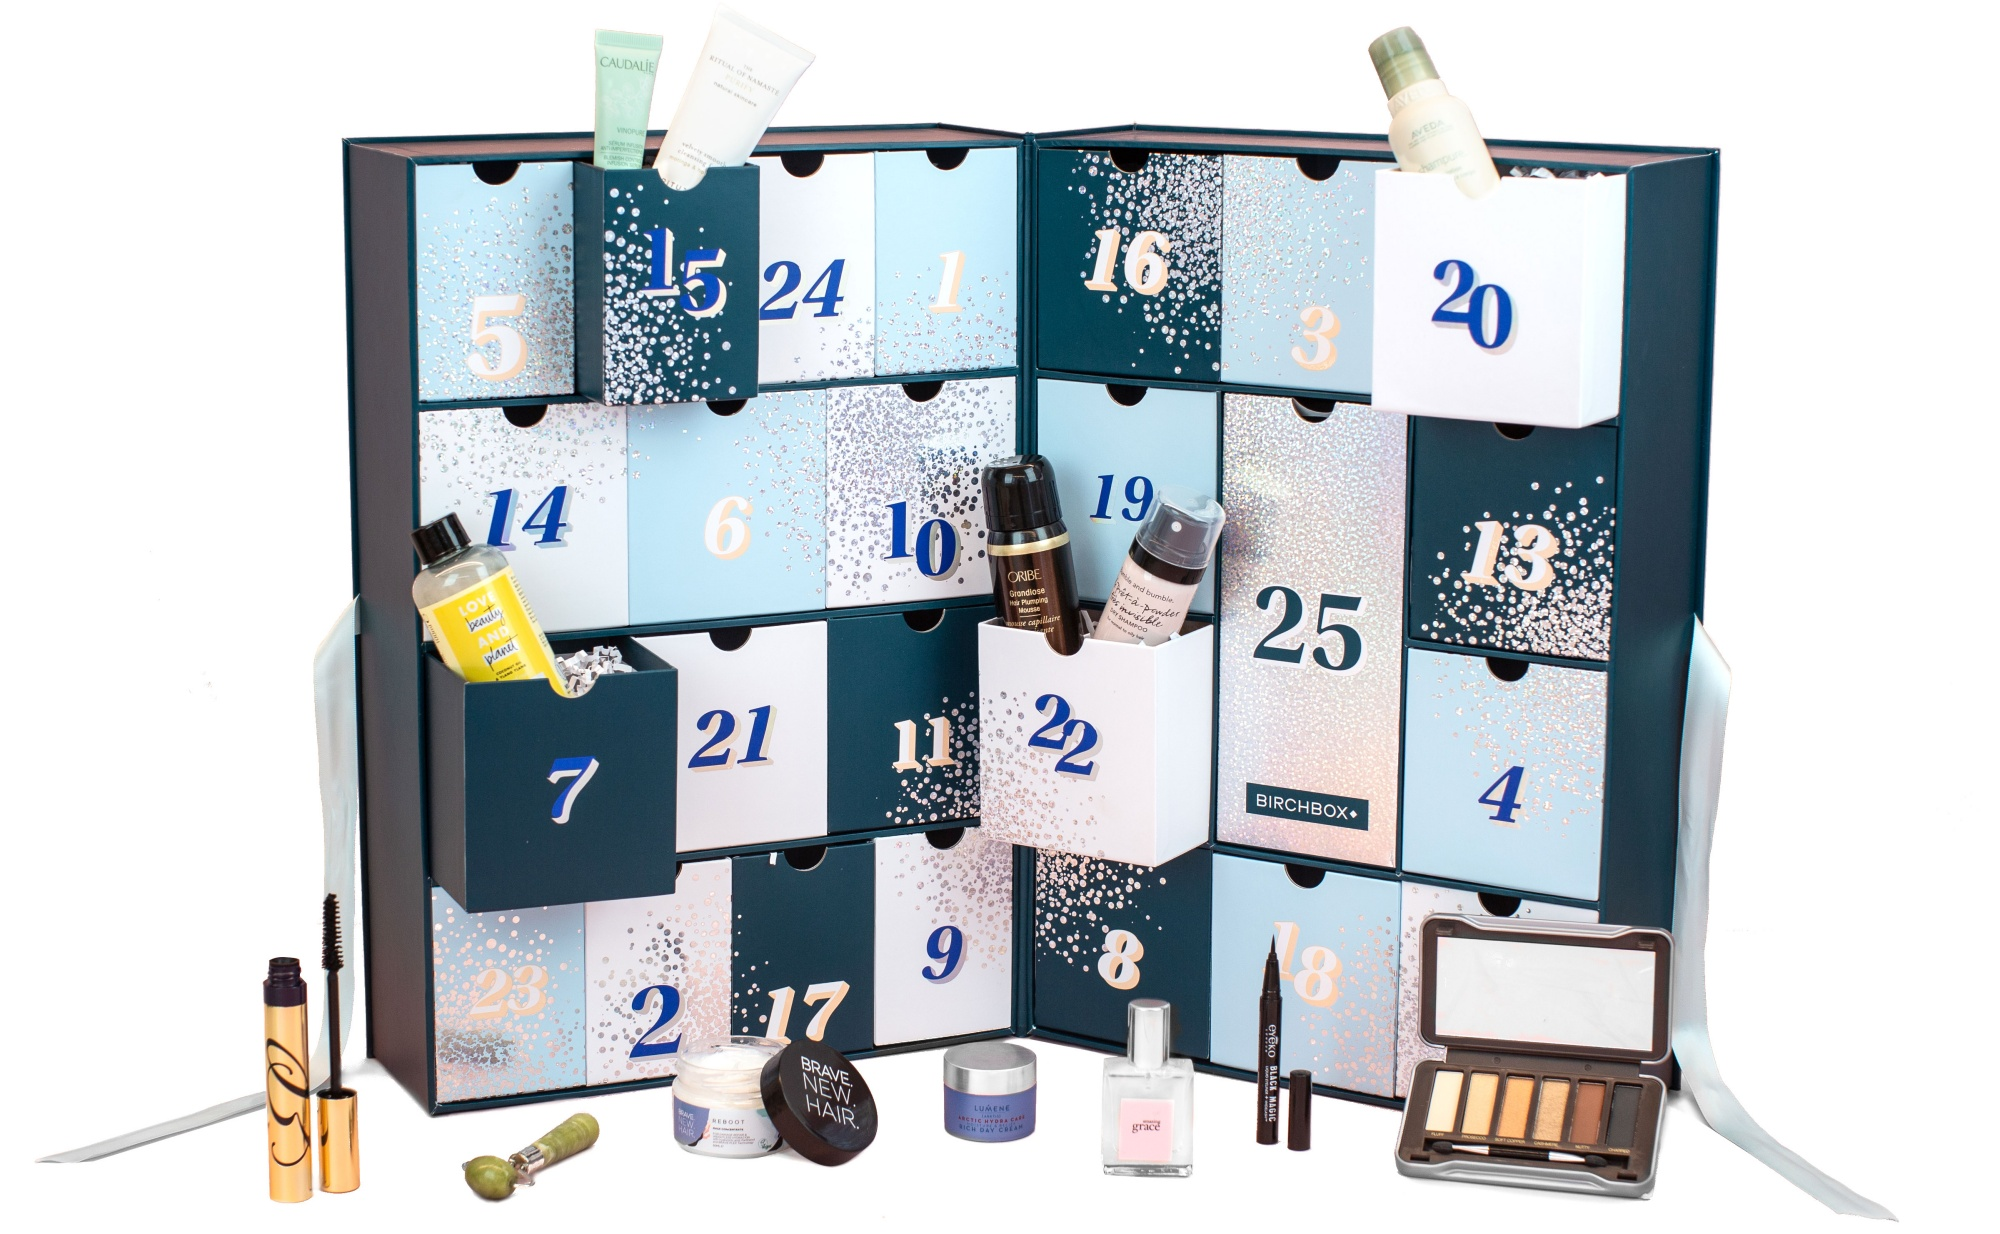 Birchbox beauty advent calendar 2019 - The LDN Diaries